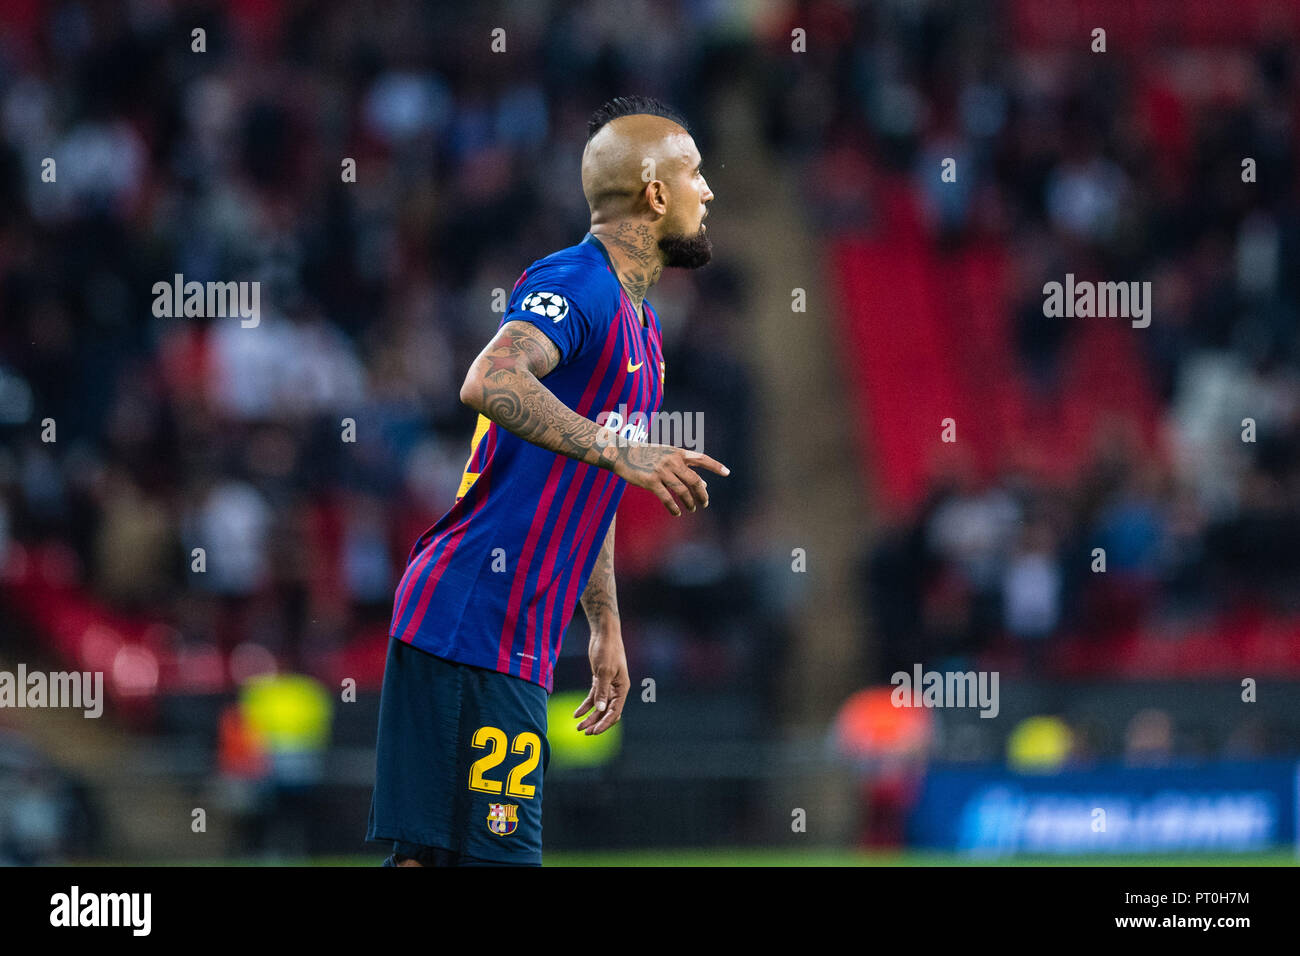 FC Barcelona with Lionel Messi at Wembley stadium during the match vs Tottenham Hotspur. - Stock Image